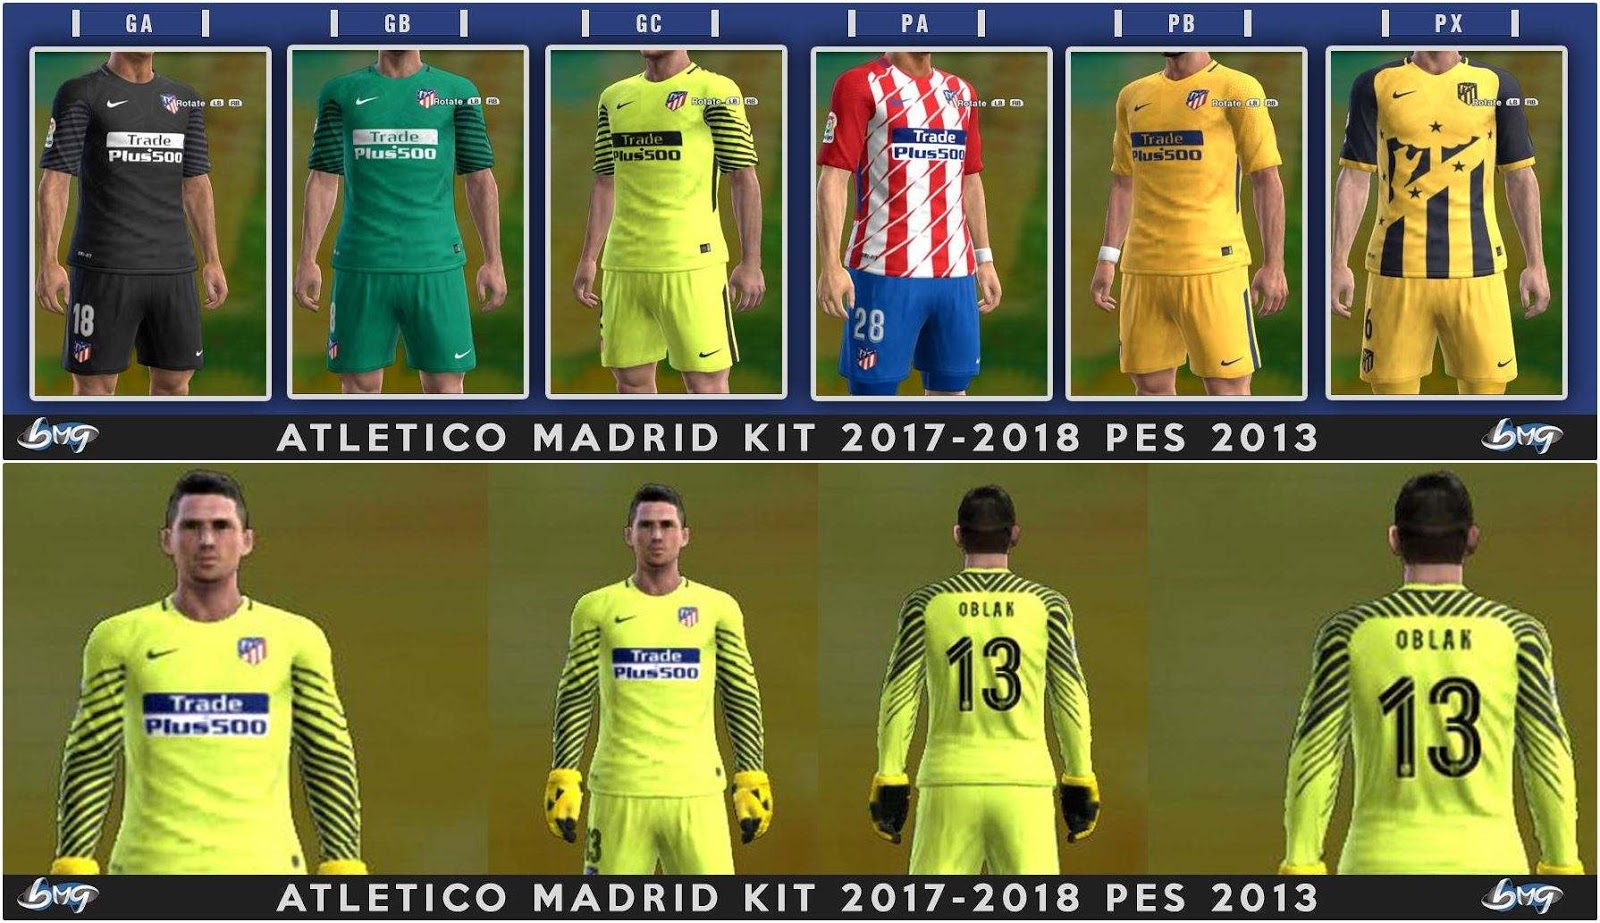 f4aaa256c PES 2013 Atletico Madrid Full GDB Kits 2017-2018